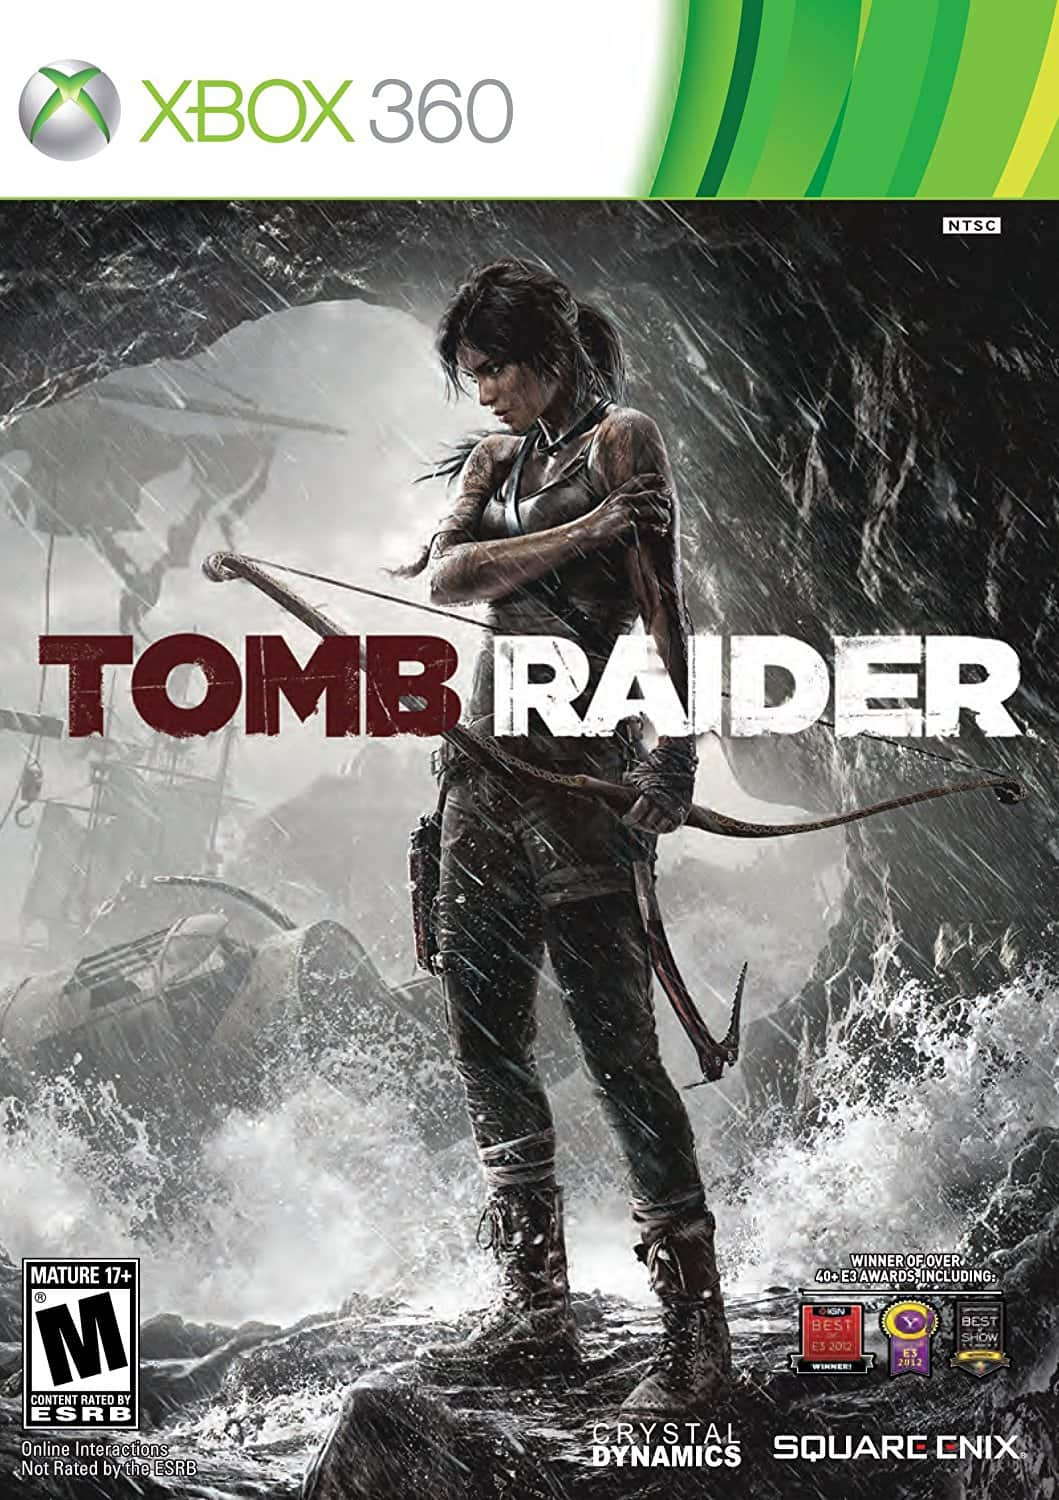 Tomb Raider (Xbox 360 Digital Code) for $1.39 @ CDKeys.com